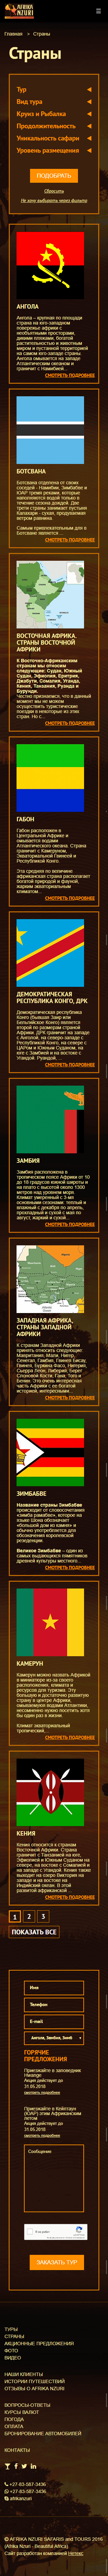 image of the mobile version of the site «Africa»